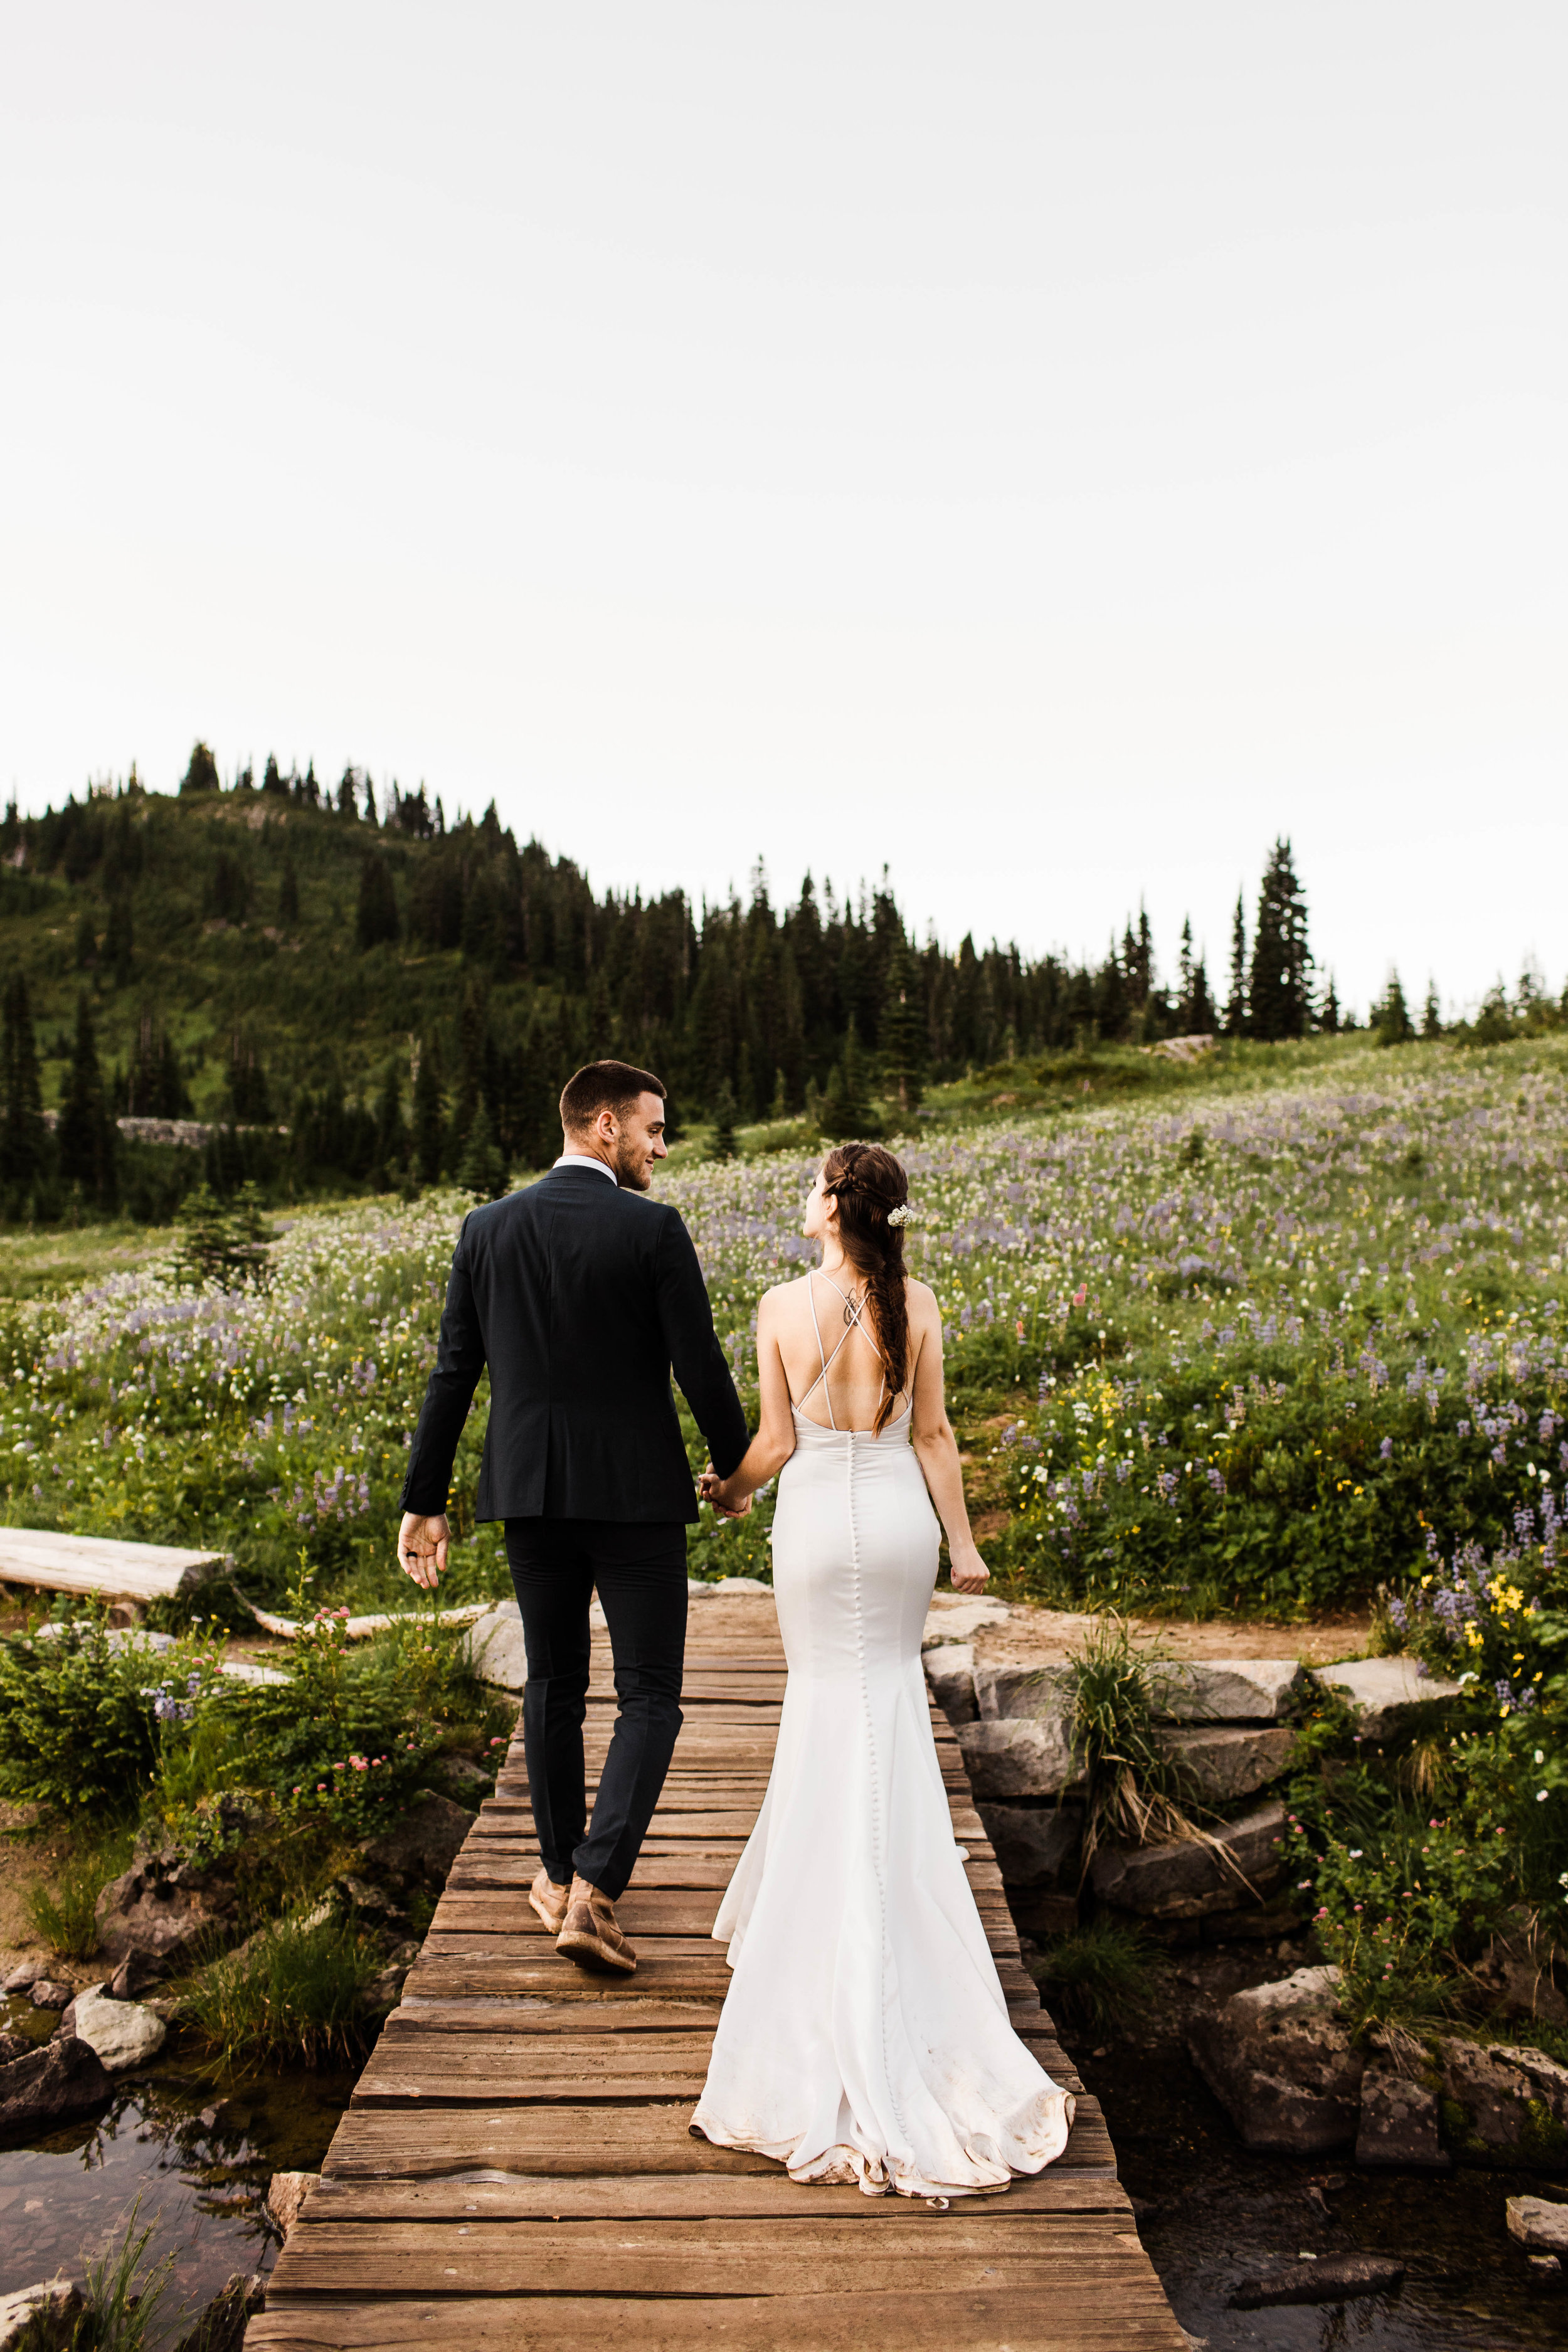 couples elopement photos during an adventurous national park elopement in Mount Rainier | Washington state elopement and adventure wedding photographers